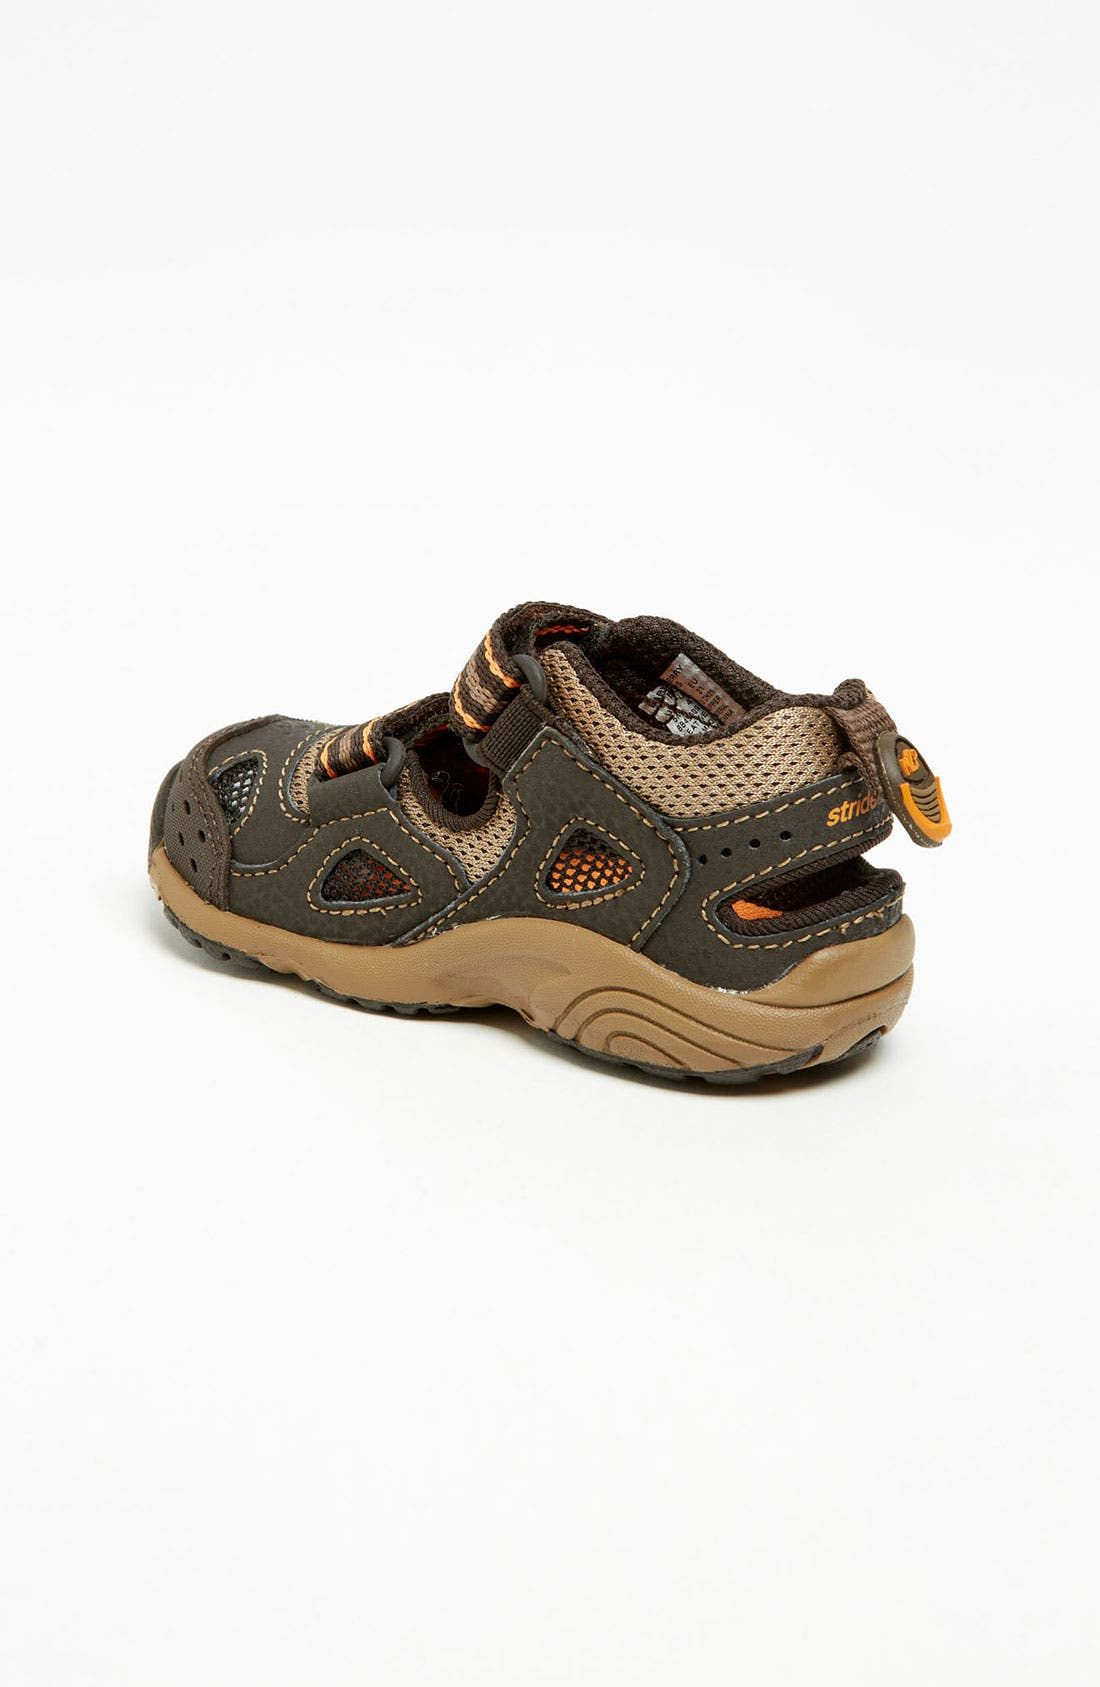 Alternate Image 2  - Stride Rite 'Baby Perry' Sandal (Baby, Walker & Toddler)